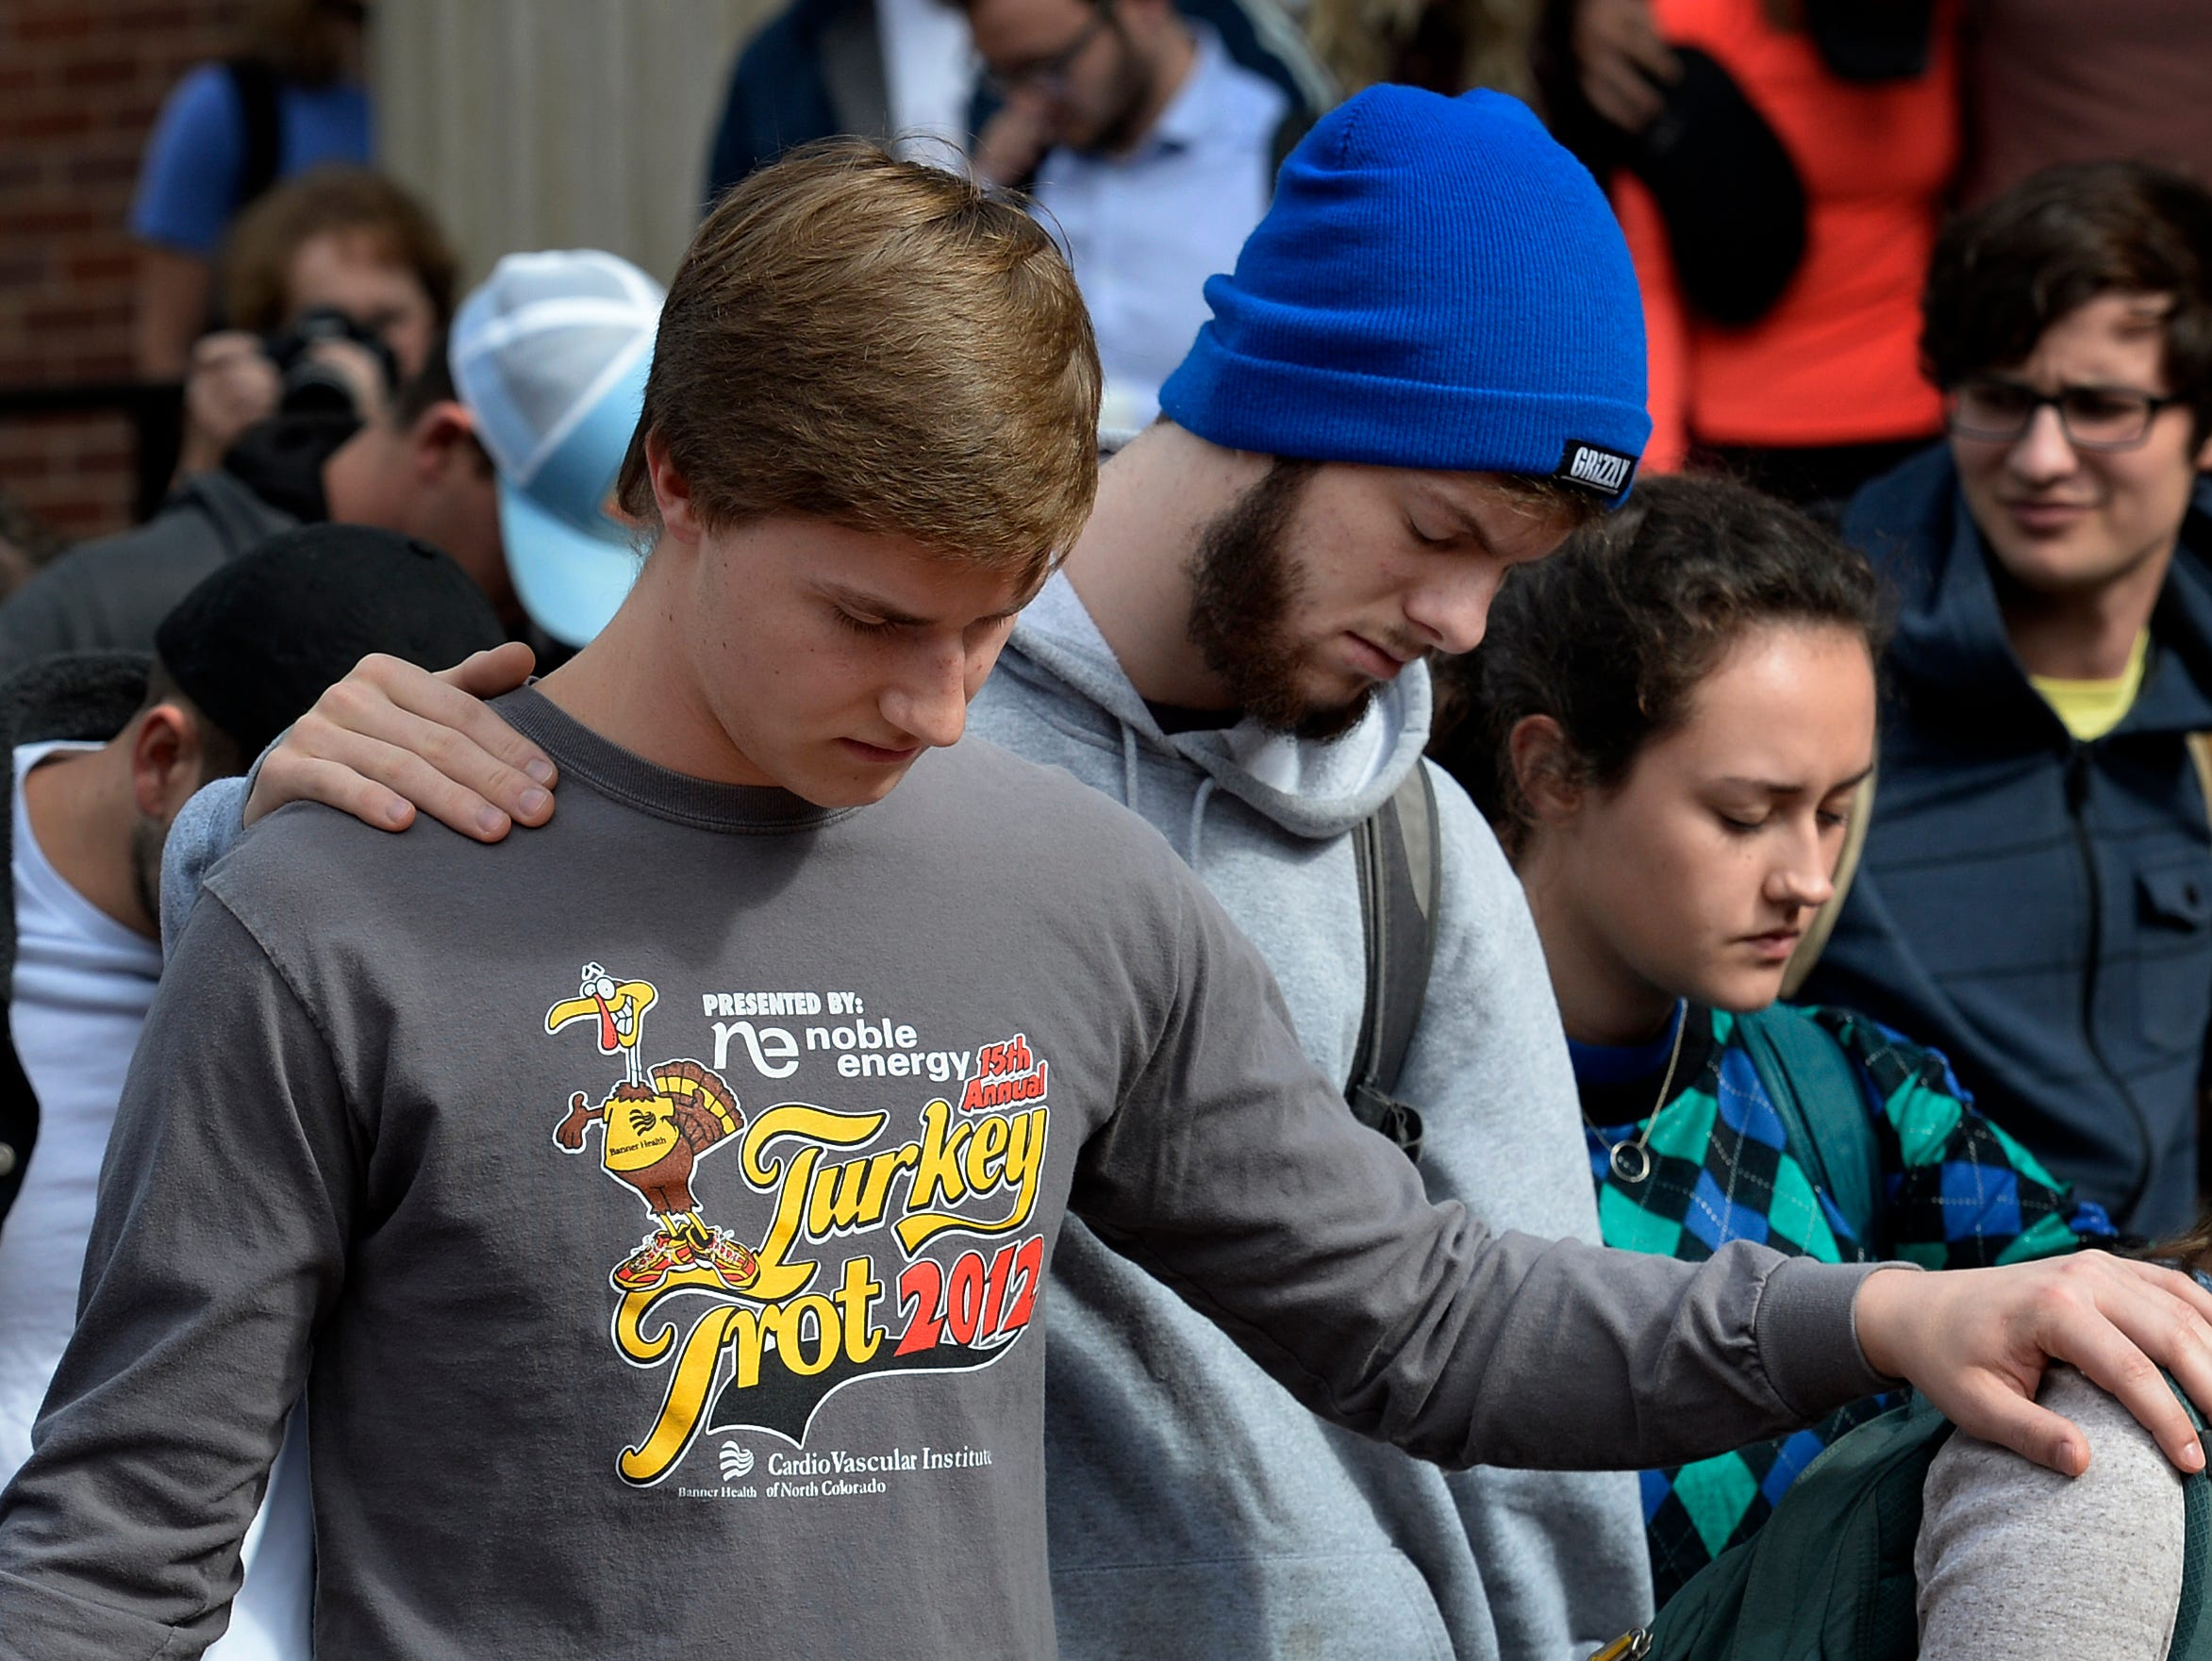 Students spend a moment in silence during a  prayer service at Lipscomb University on Thursday, Nov. 8, 2018, in Nashville, Tenn. The event honored the 12 victims of a mass shooting at a bar Wednesday night in Southern California. College students from Pepperdine University were in the bar at the time of the shooting. Both Pepperdine and Lipscomb are affiliated with the Church of Christ.